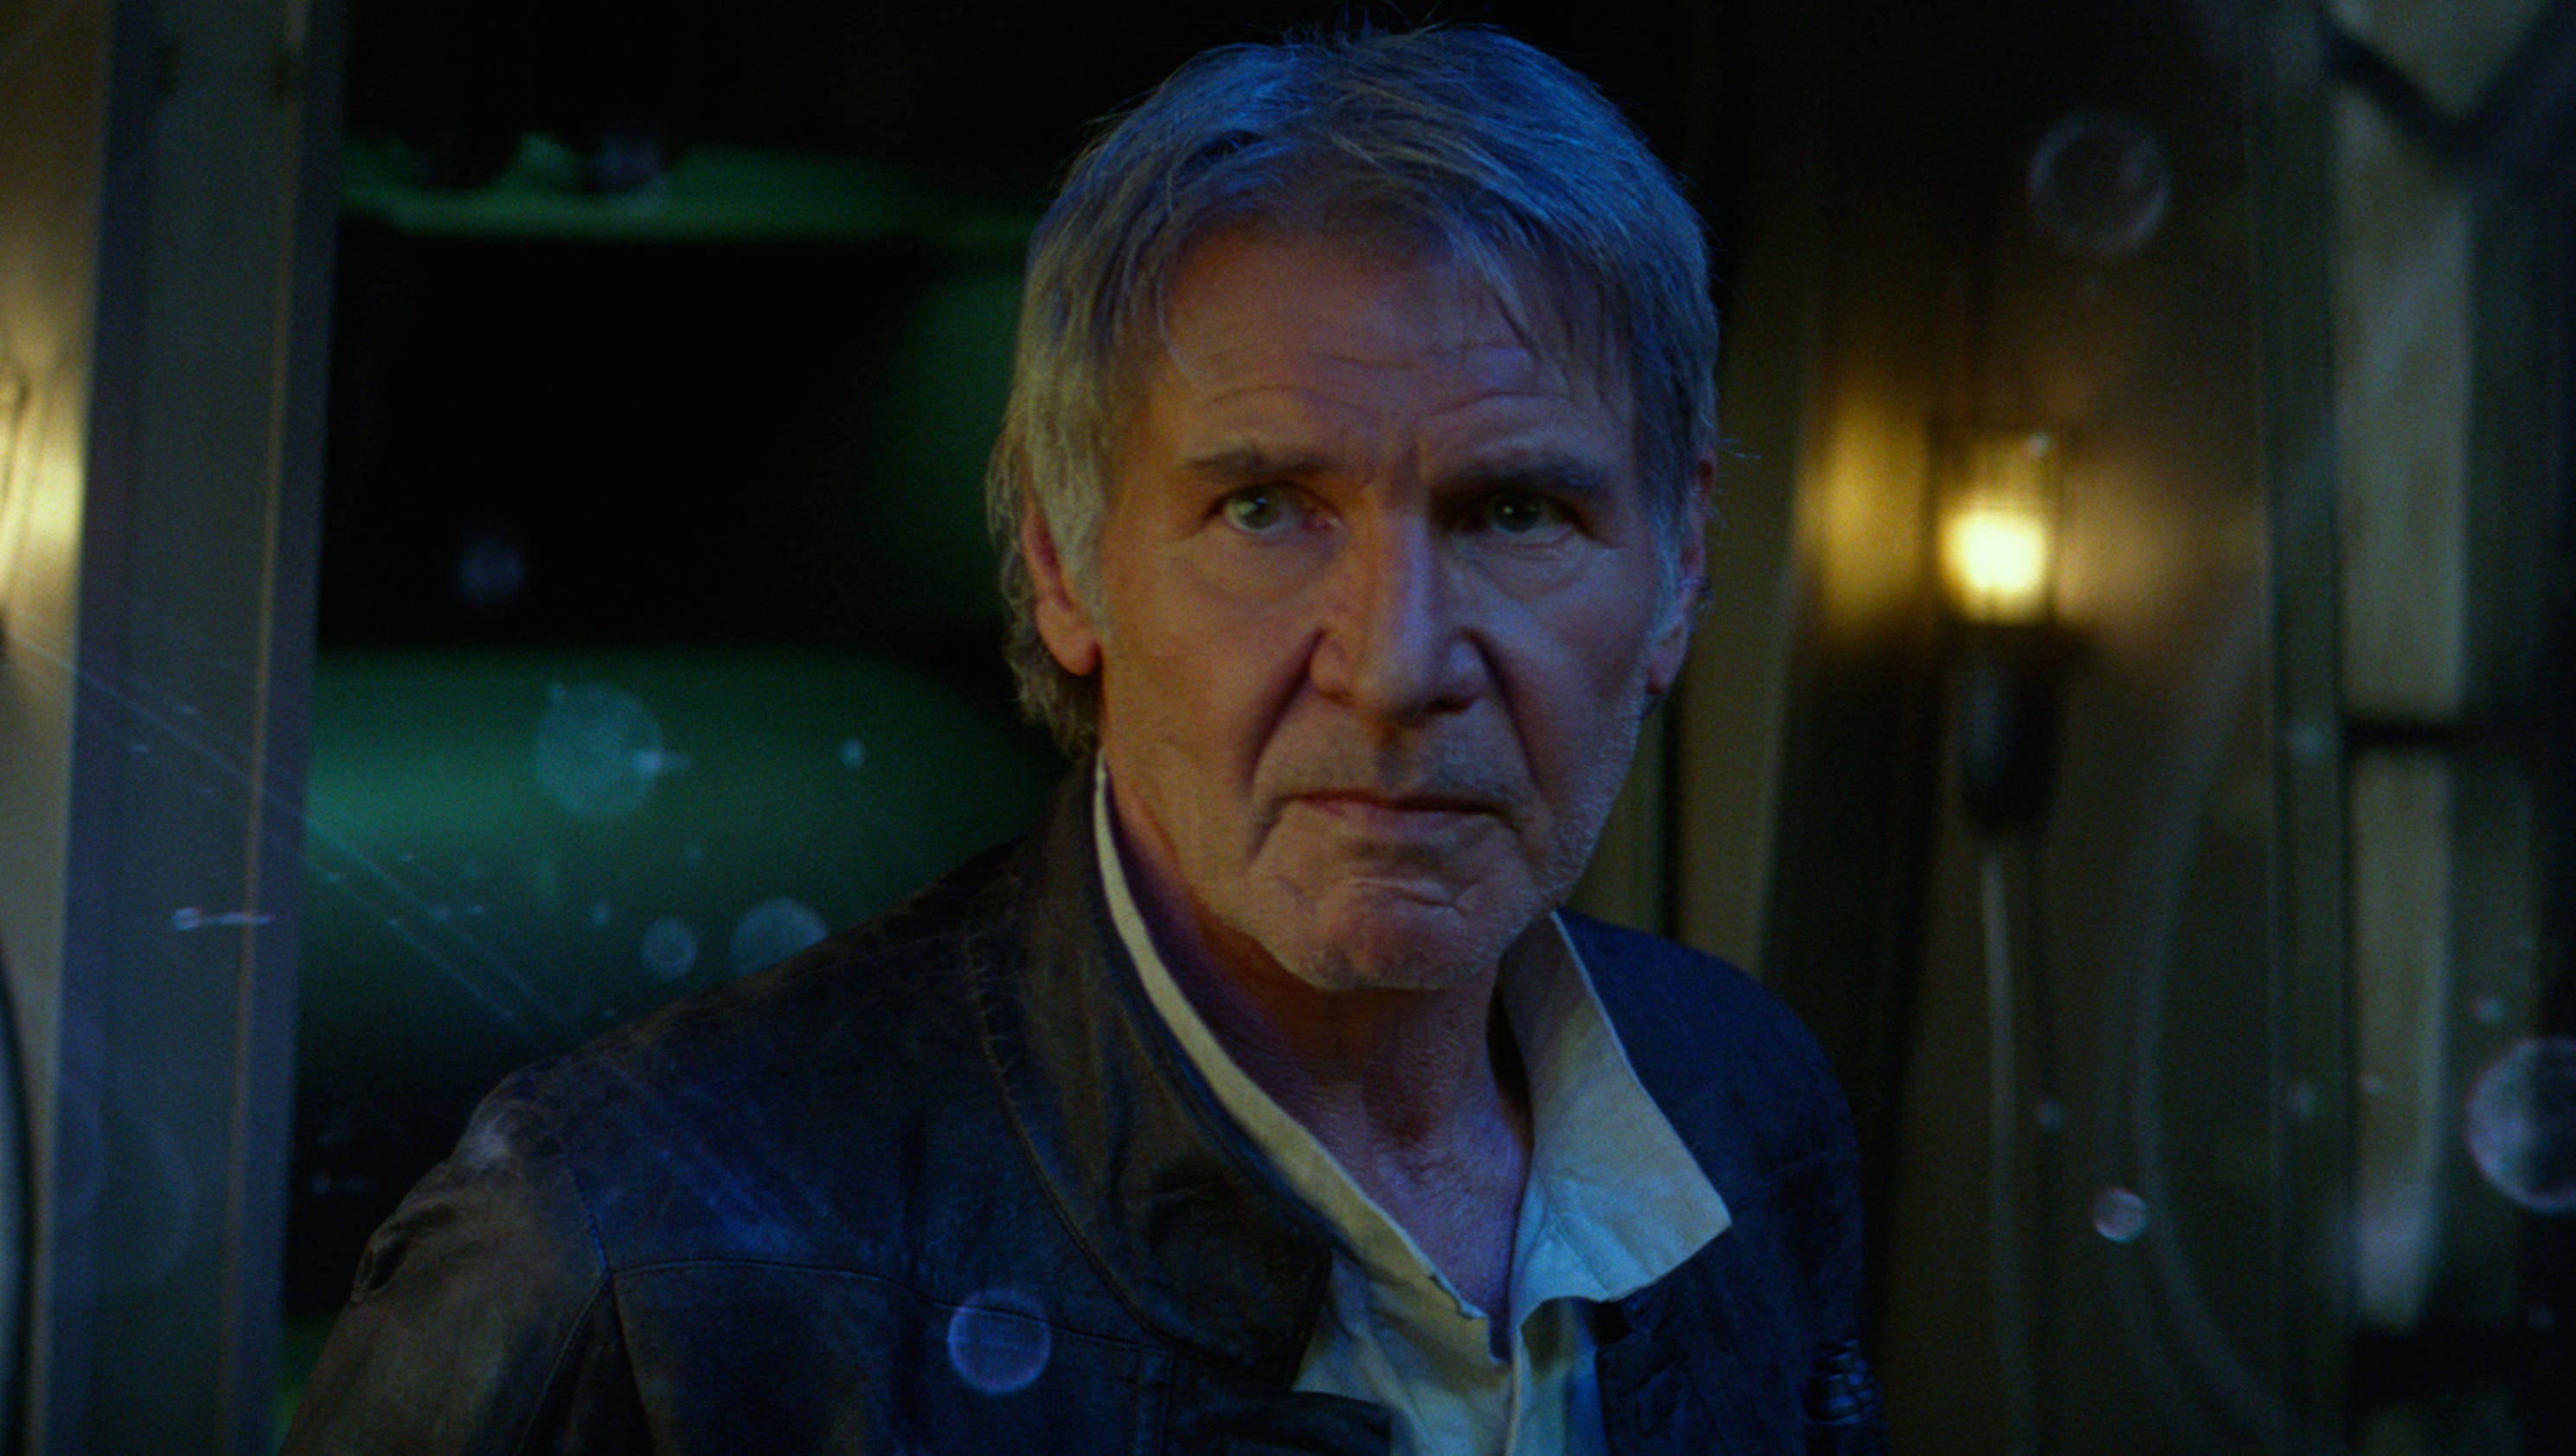 Sorry, Han Solo, there's no time to mourn your tragic 'Force Awakens' death in 'Last Jedi'